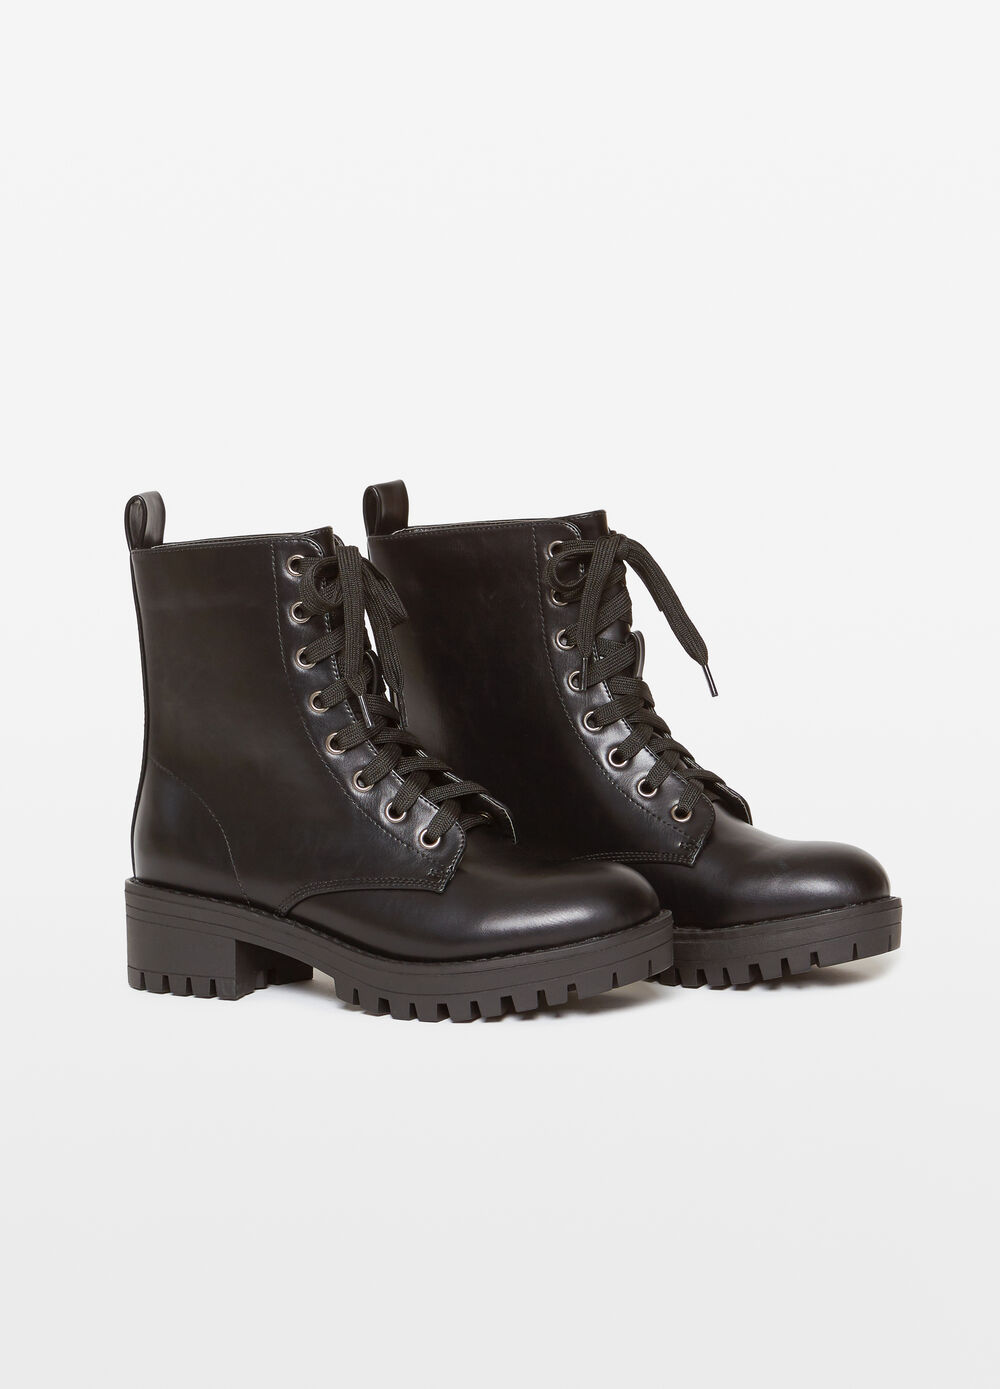 Solid colour leather look boots